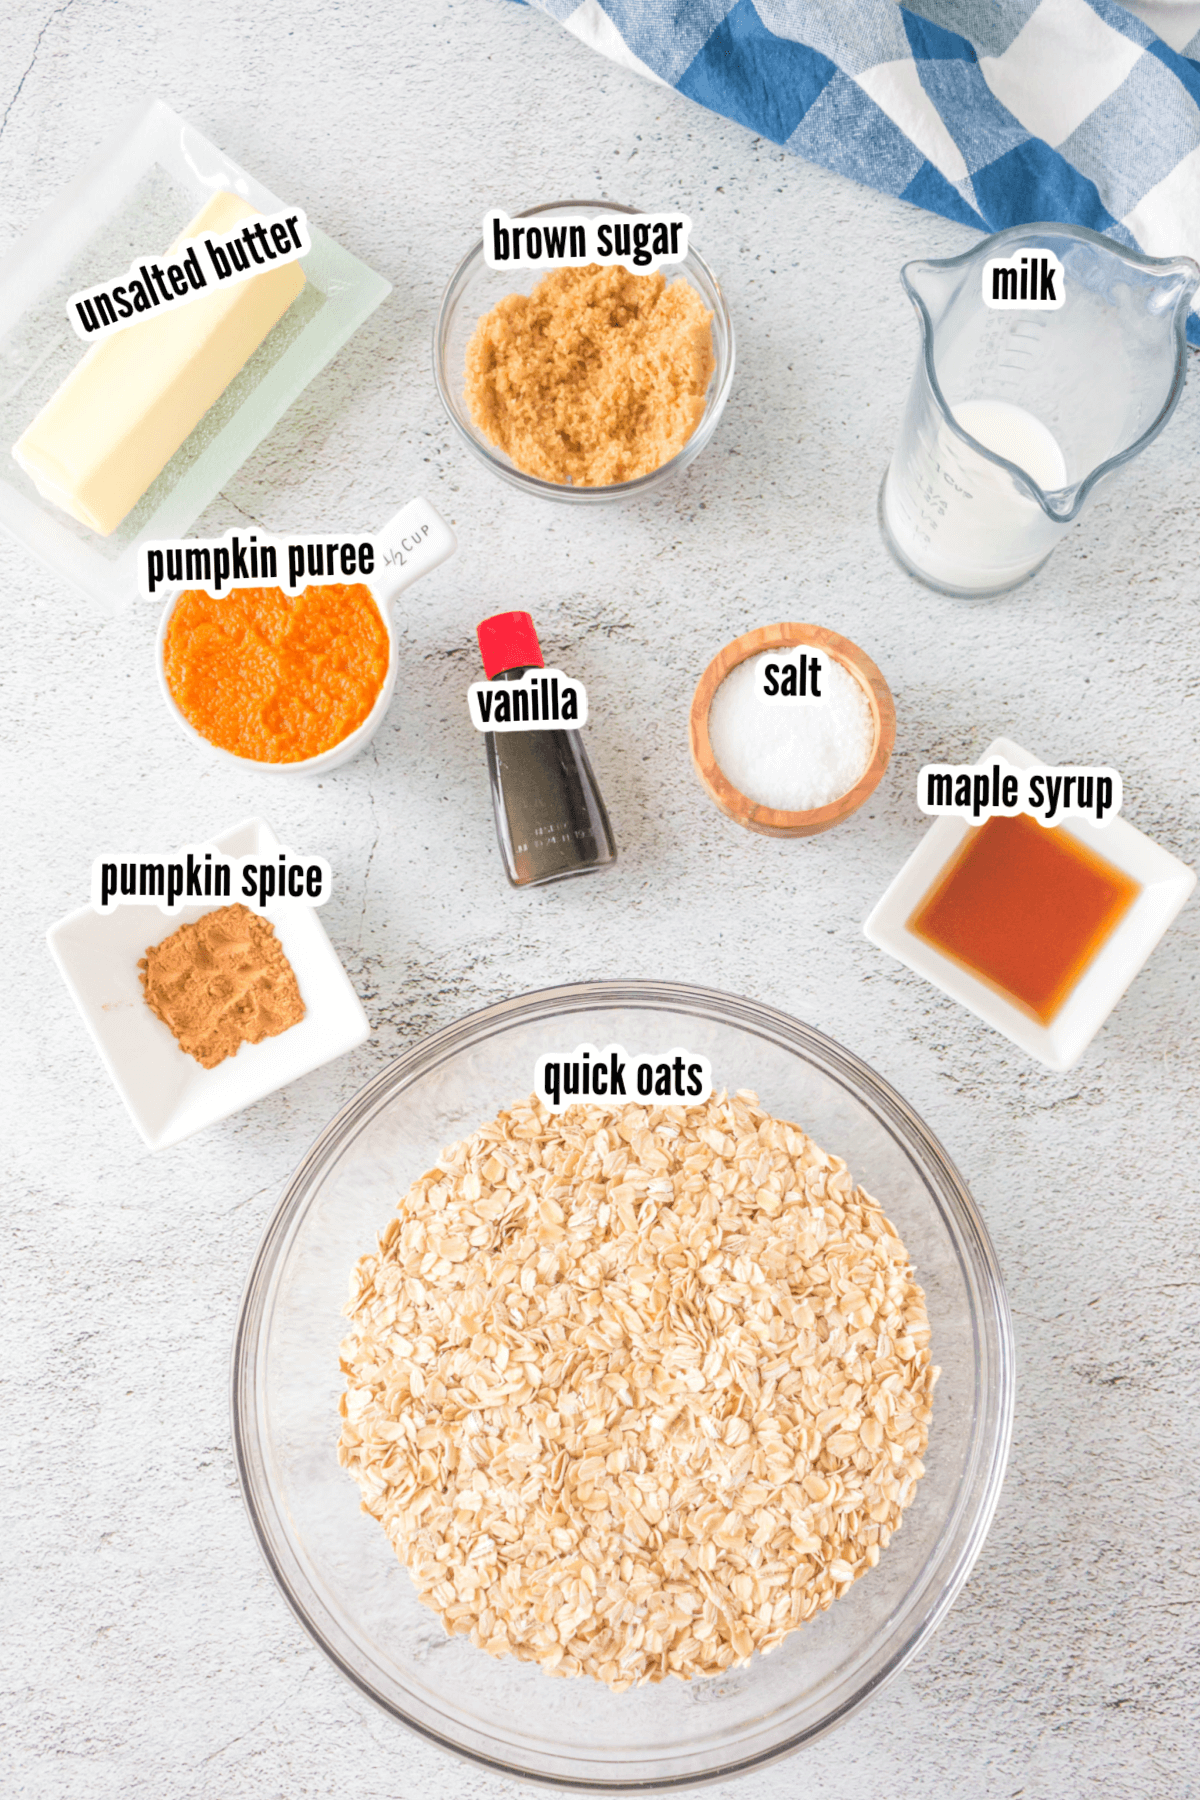 Ingredients on white background for Pumpkin Spice Oatmeal Cookies